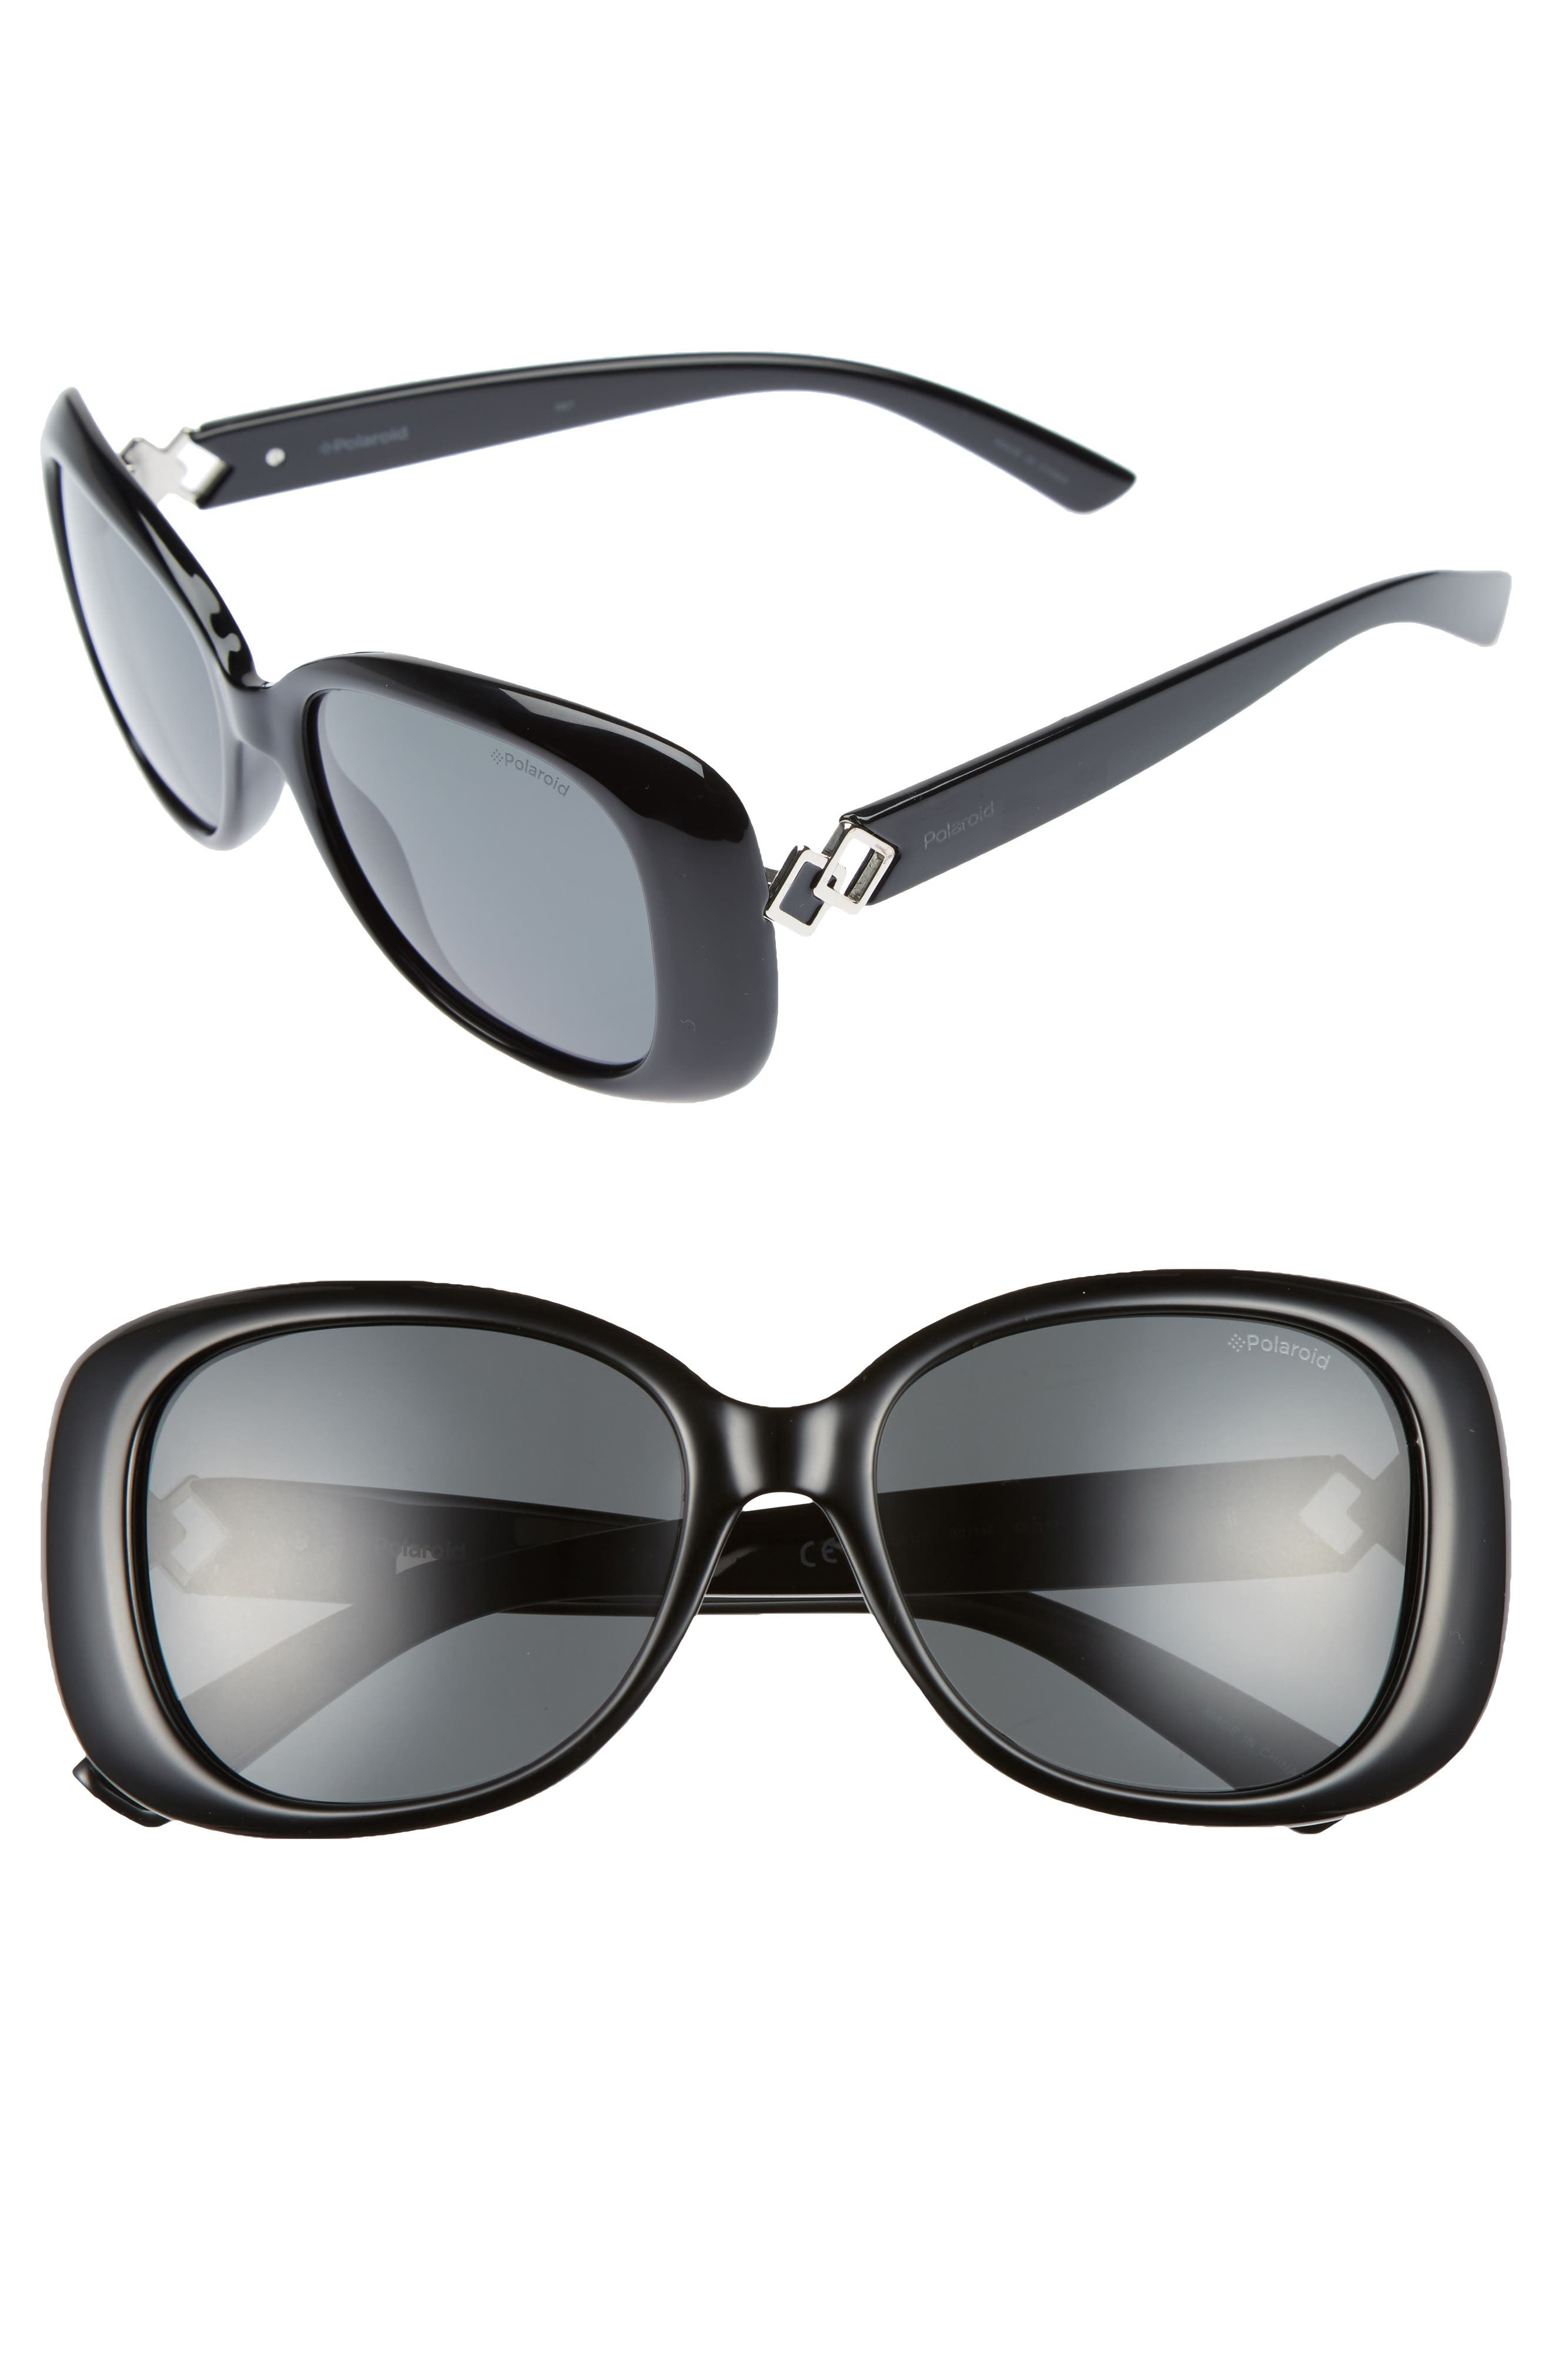 55mm Polarized Butterfly Sunglasses,                         Main,                         color, 001